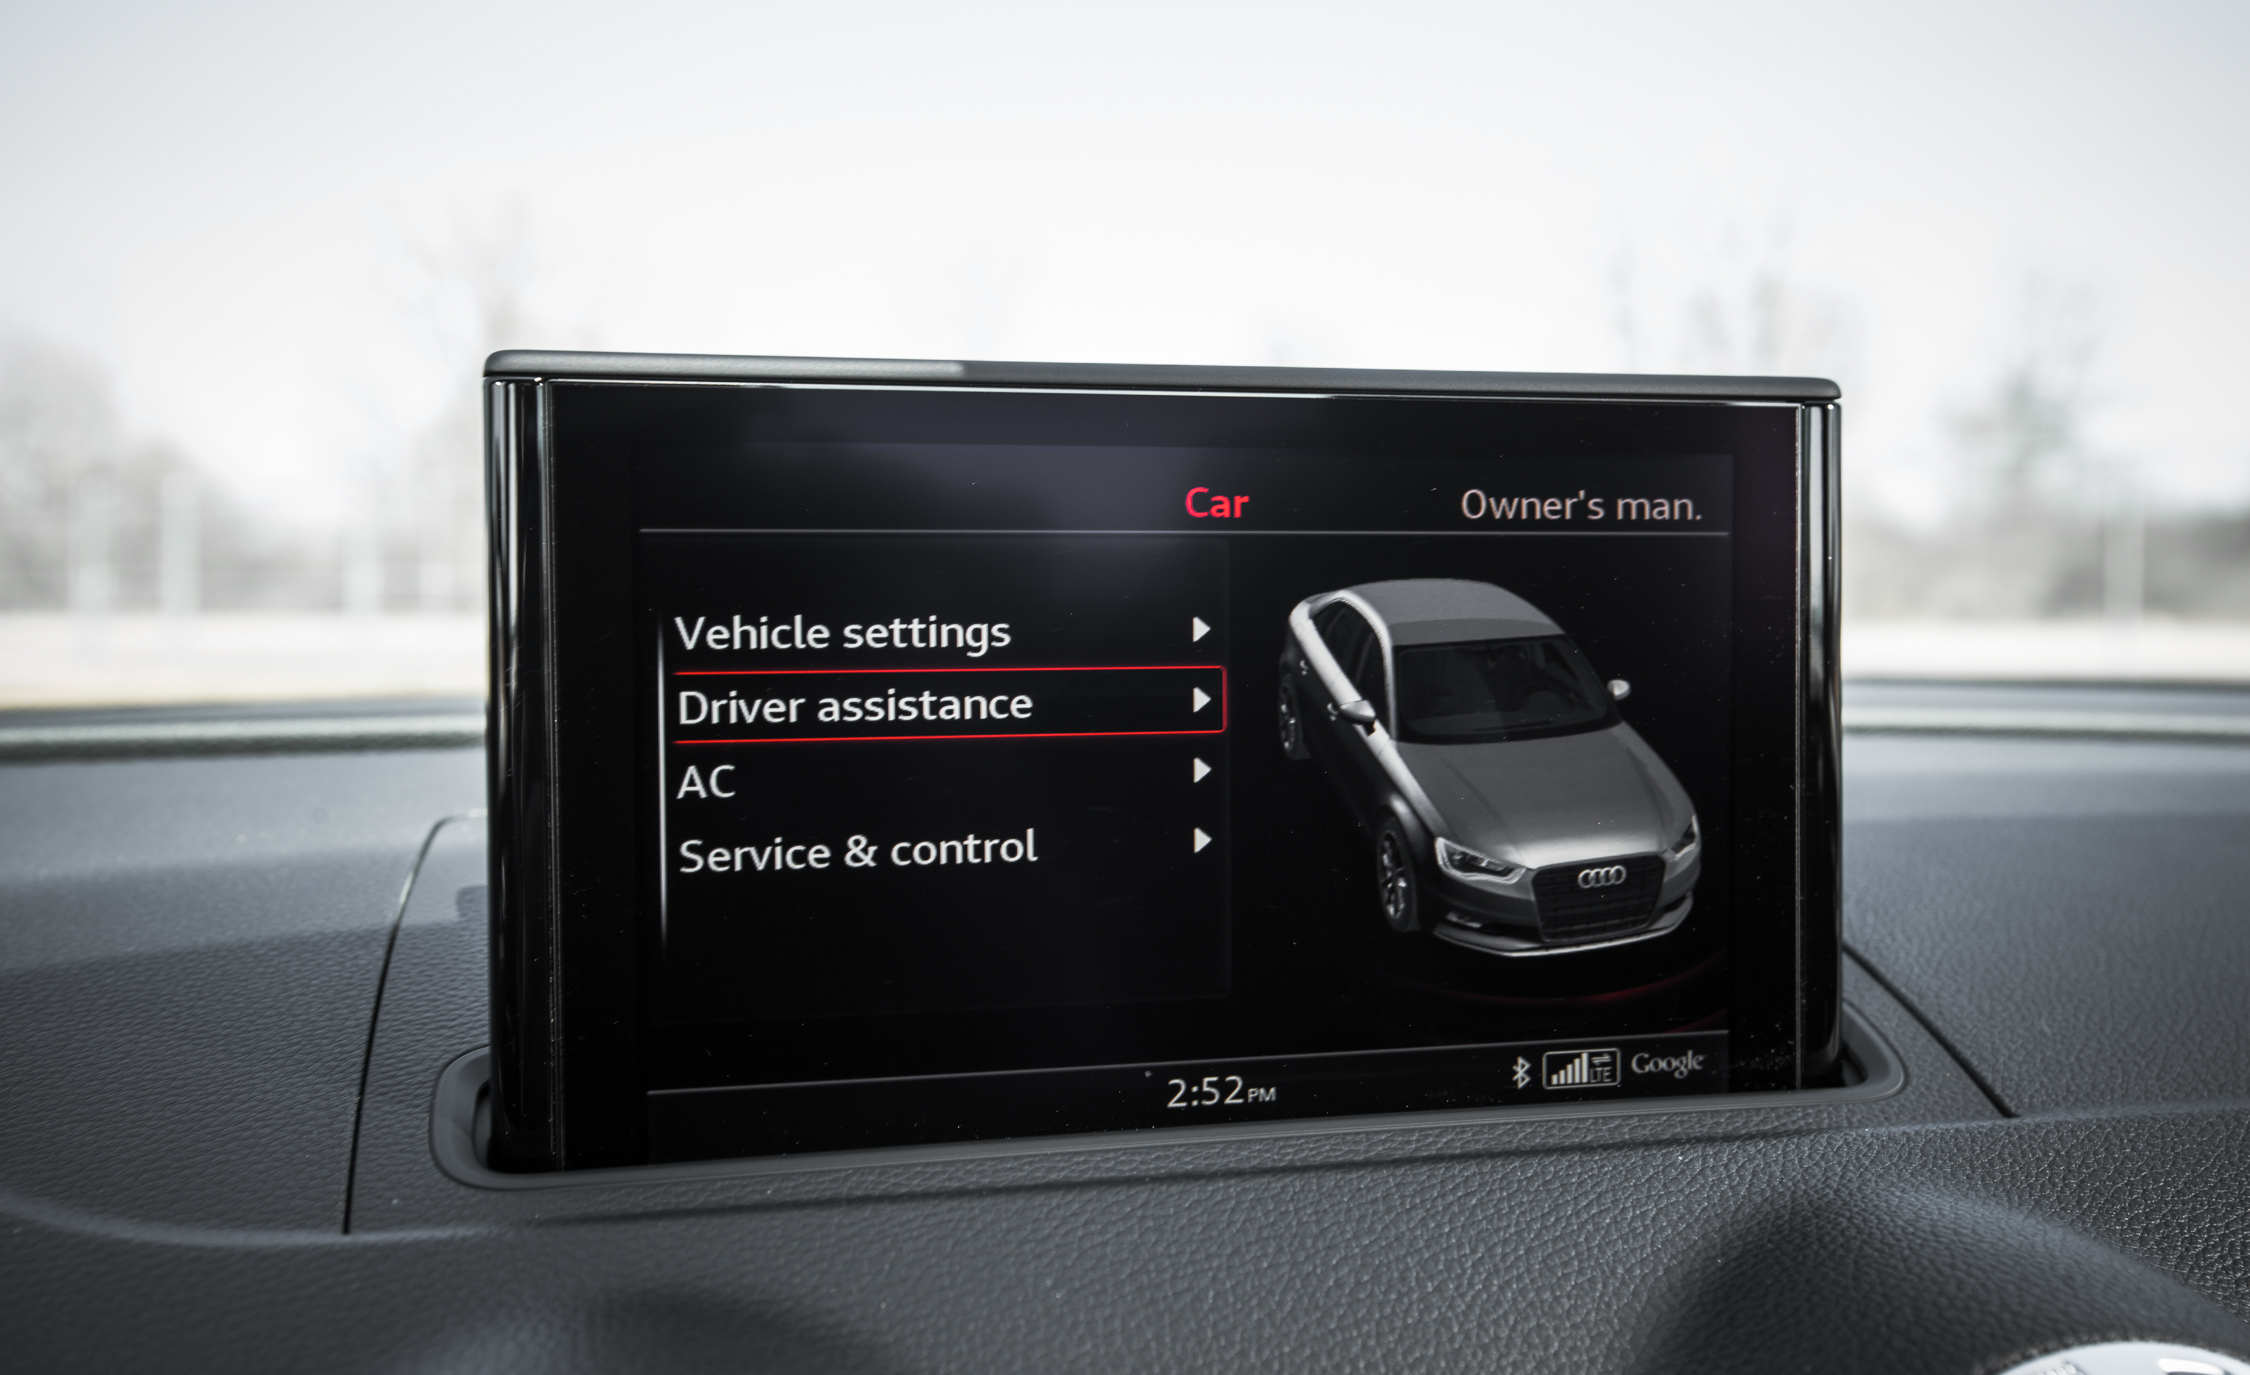 2015 Audi A3 TDI Interior View Center Screen (Photo 40 of 50)